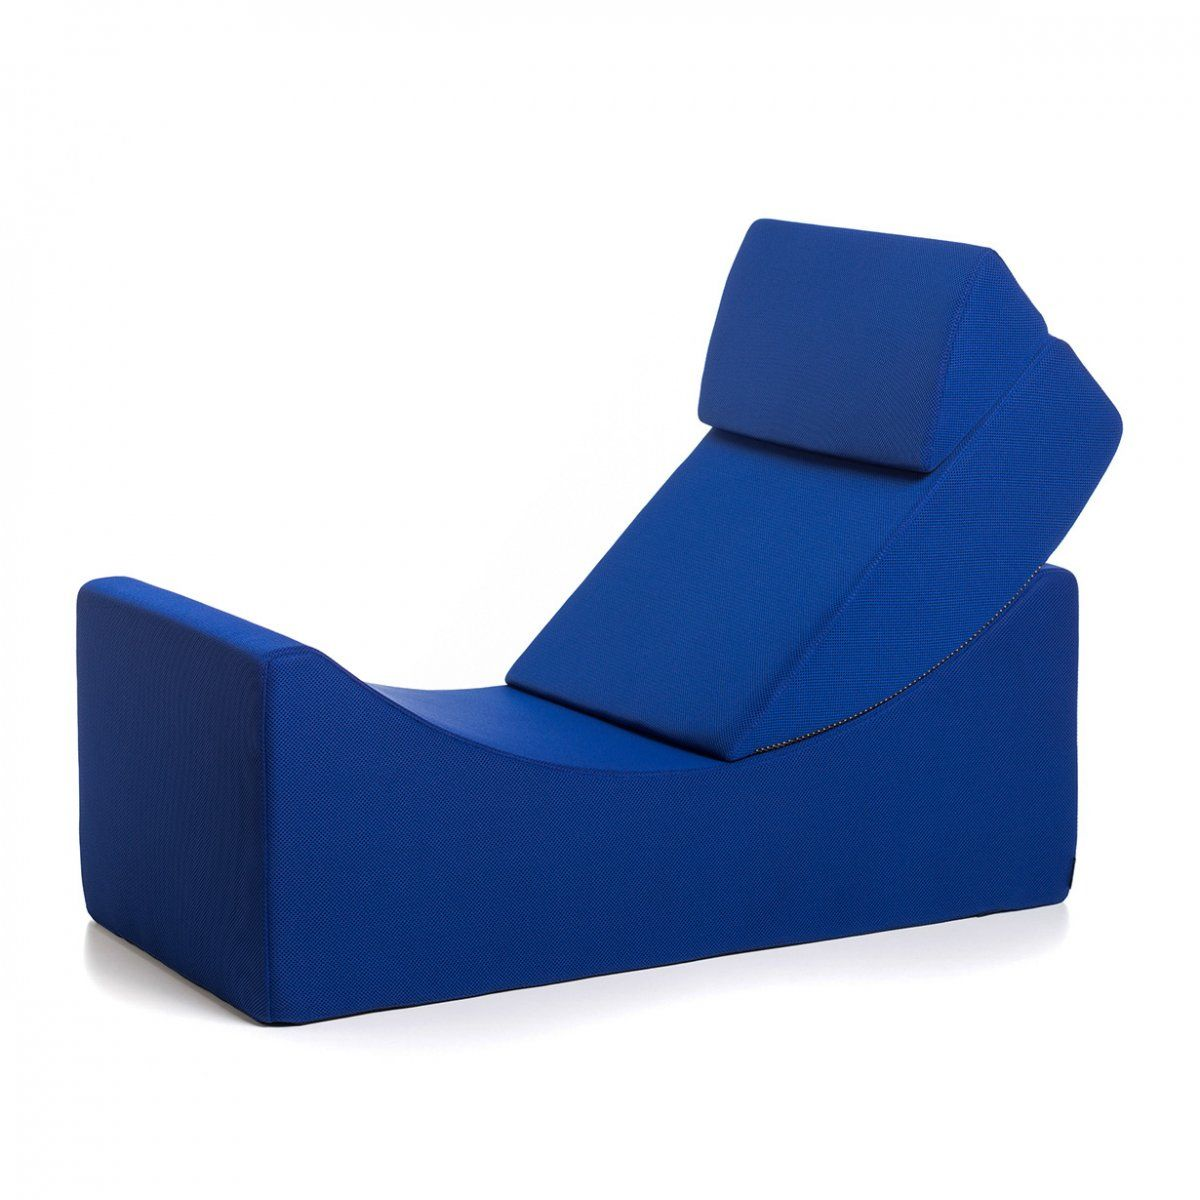 The Moon chaise longue is a simple yet extremely useful furnishing element designed for comfortable sitting, lying or use as a low table. Moon is available online in a range of attractive colours.